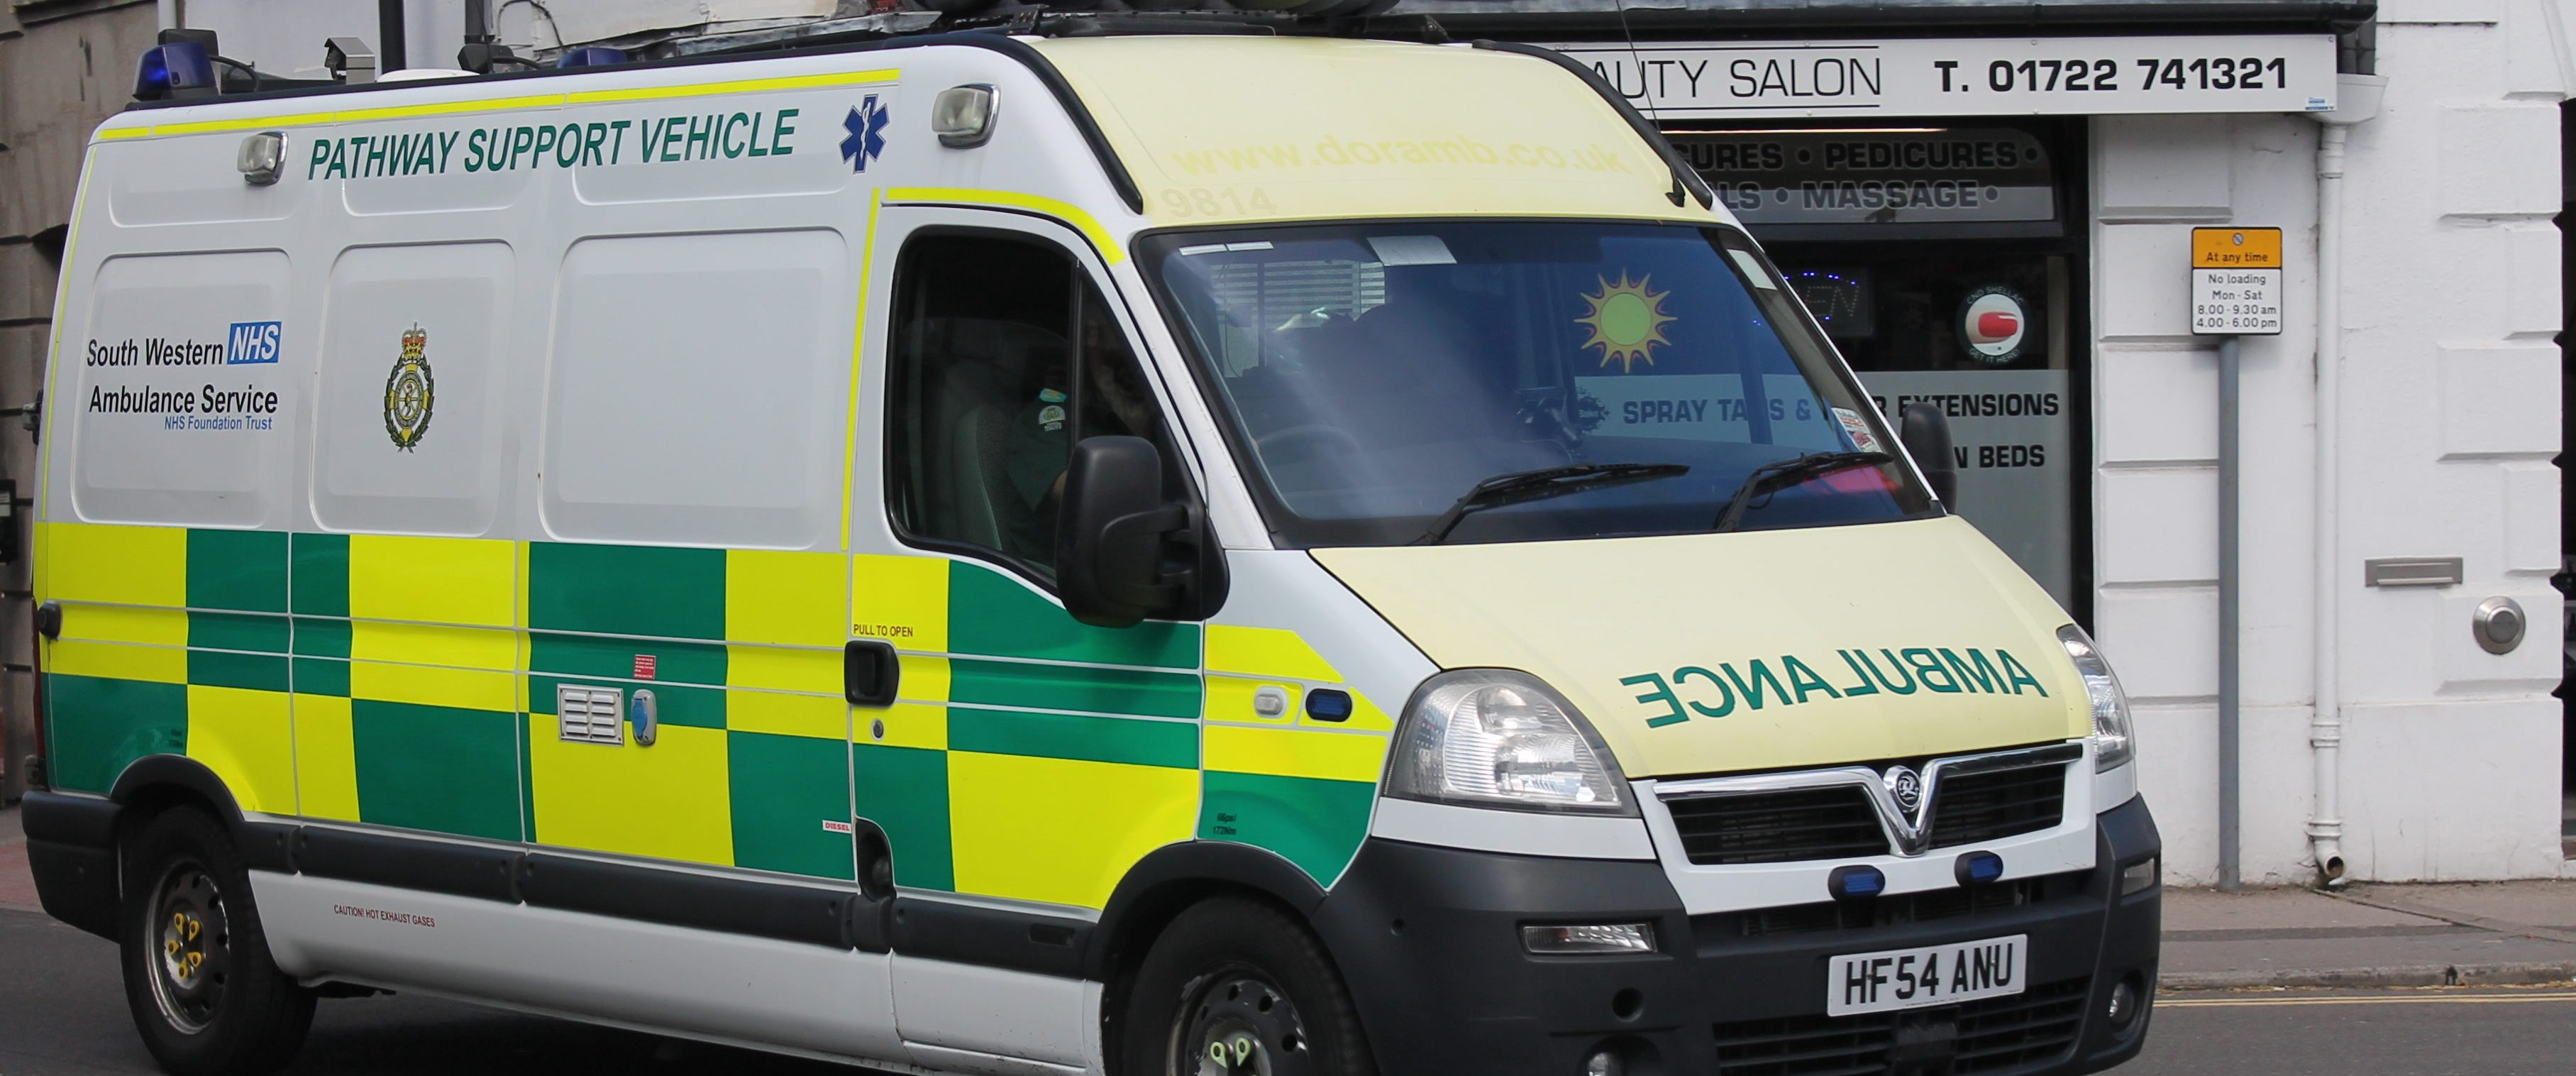 Patients wait twice as long for ambulances when they become